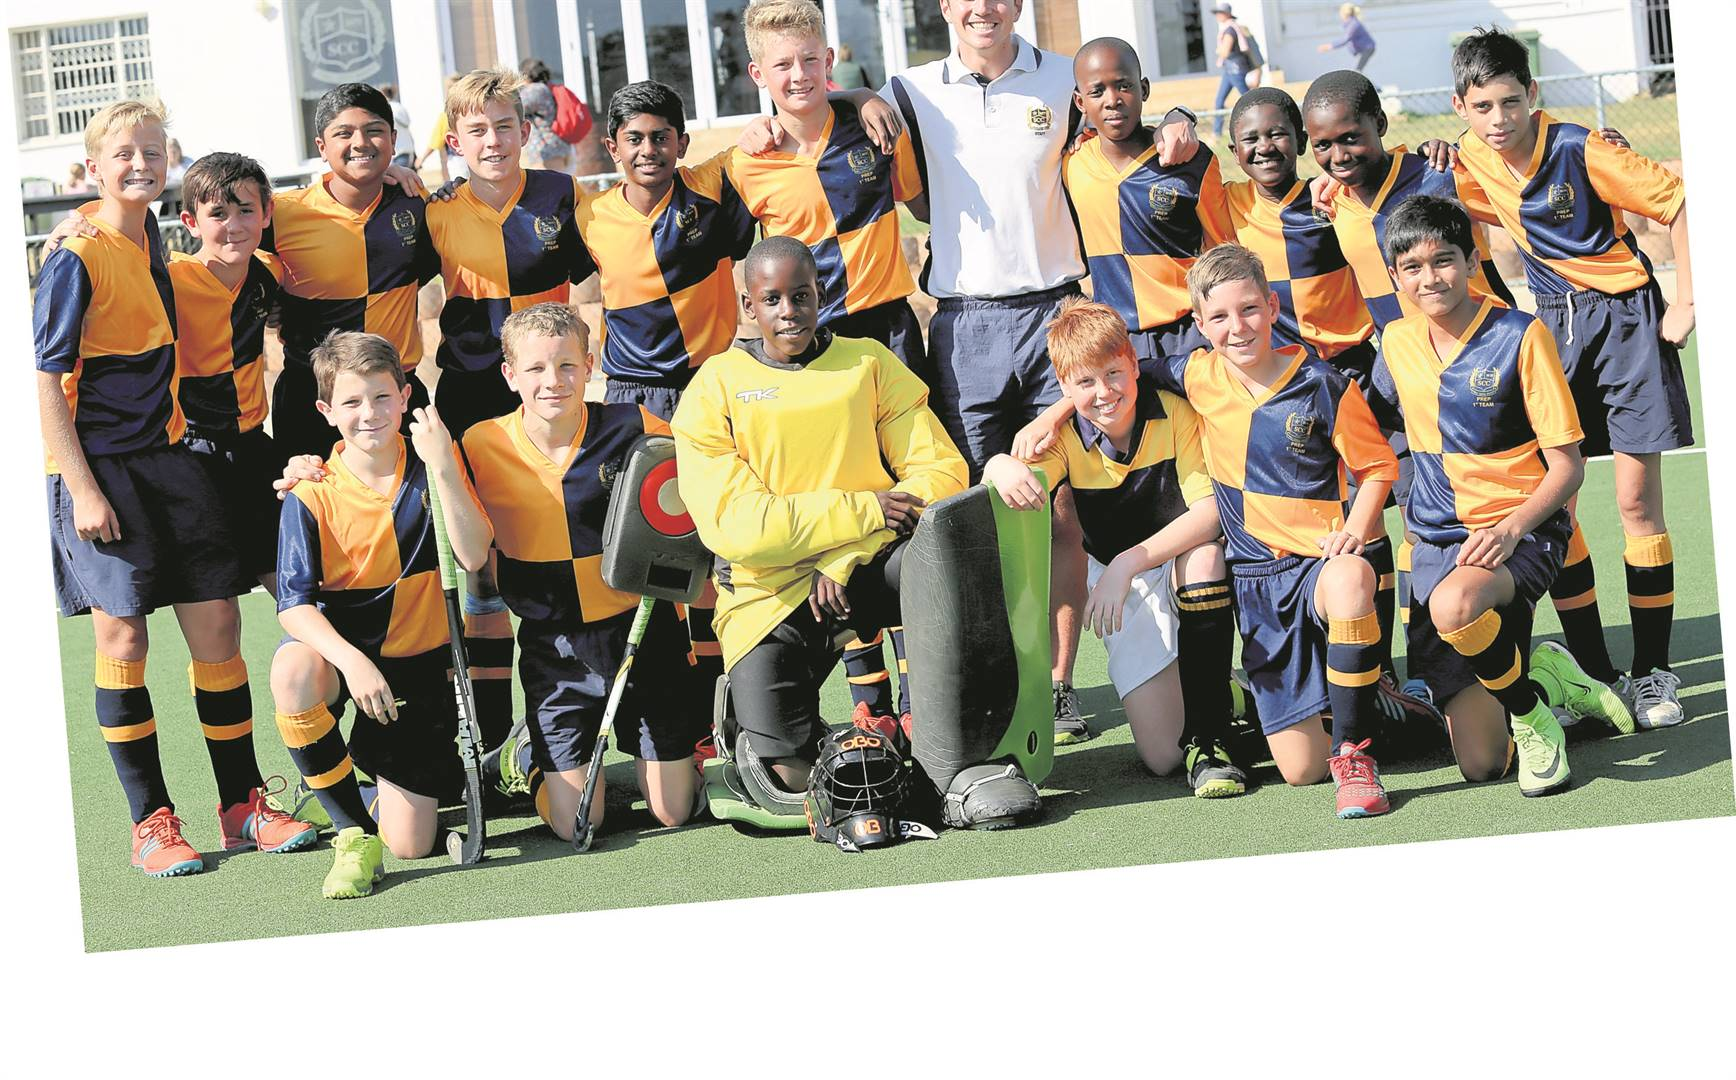 It was all smiles from our Prep 1st Hockey team after a successful day of hockey against our friendly rivals, Merchiston.Pictured: The St Charles College Prep 1st Hockey team.PHOTO: supplied